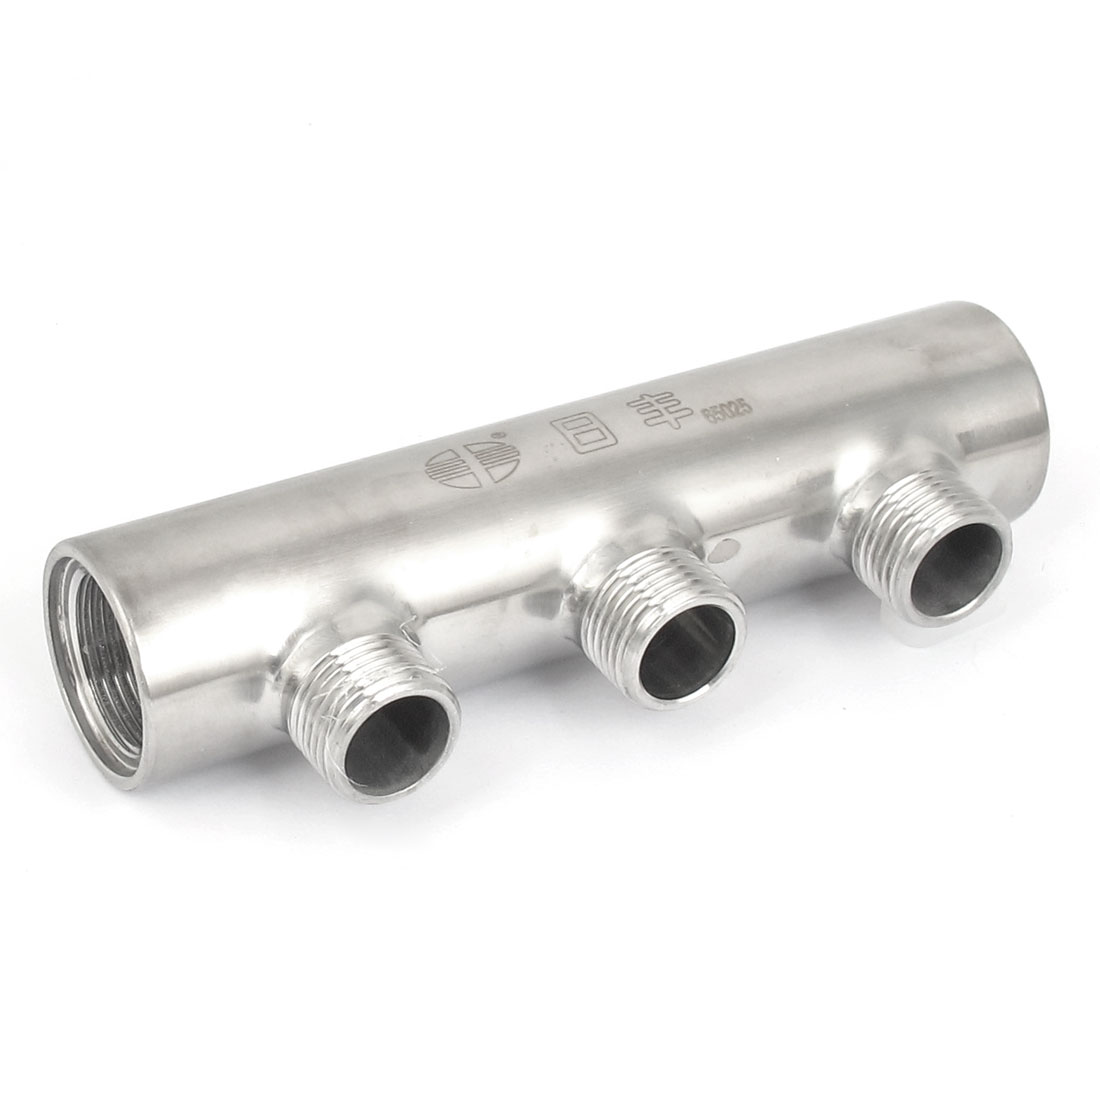 Stainless Steel Distribution Manifold for Underfloor Heating System